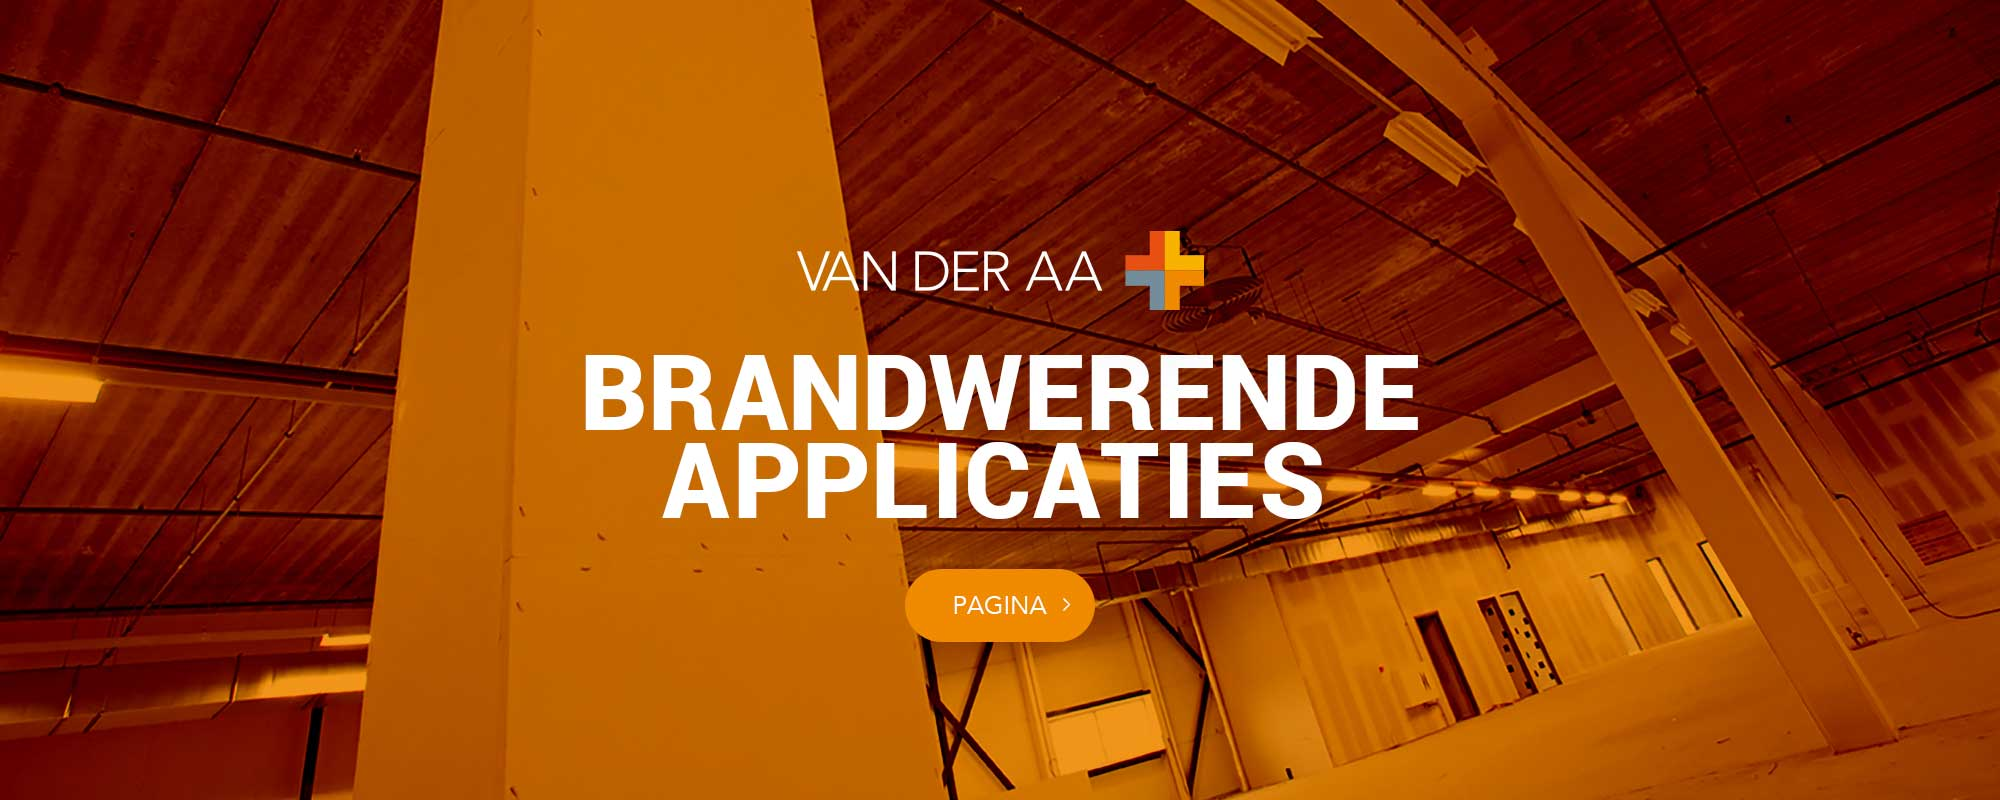 https://rbplus.nl/nl/rb-groep/diensten/brandwerende-applicaties